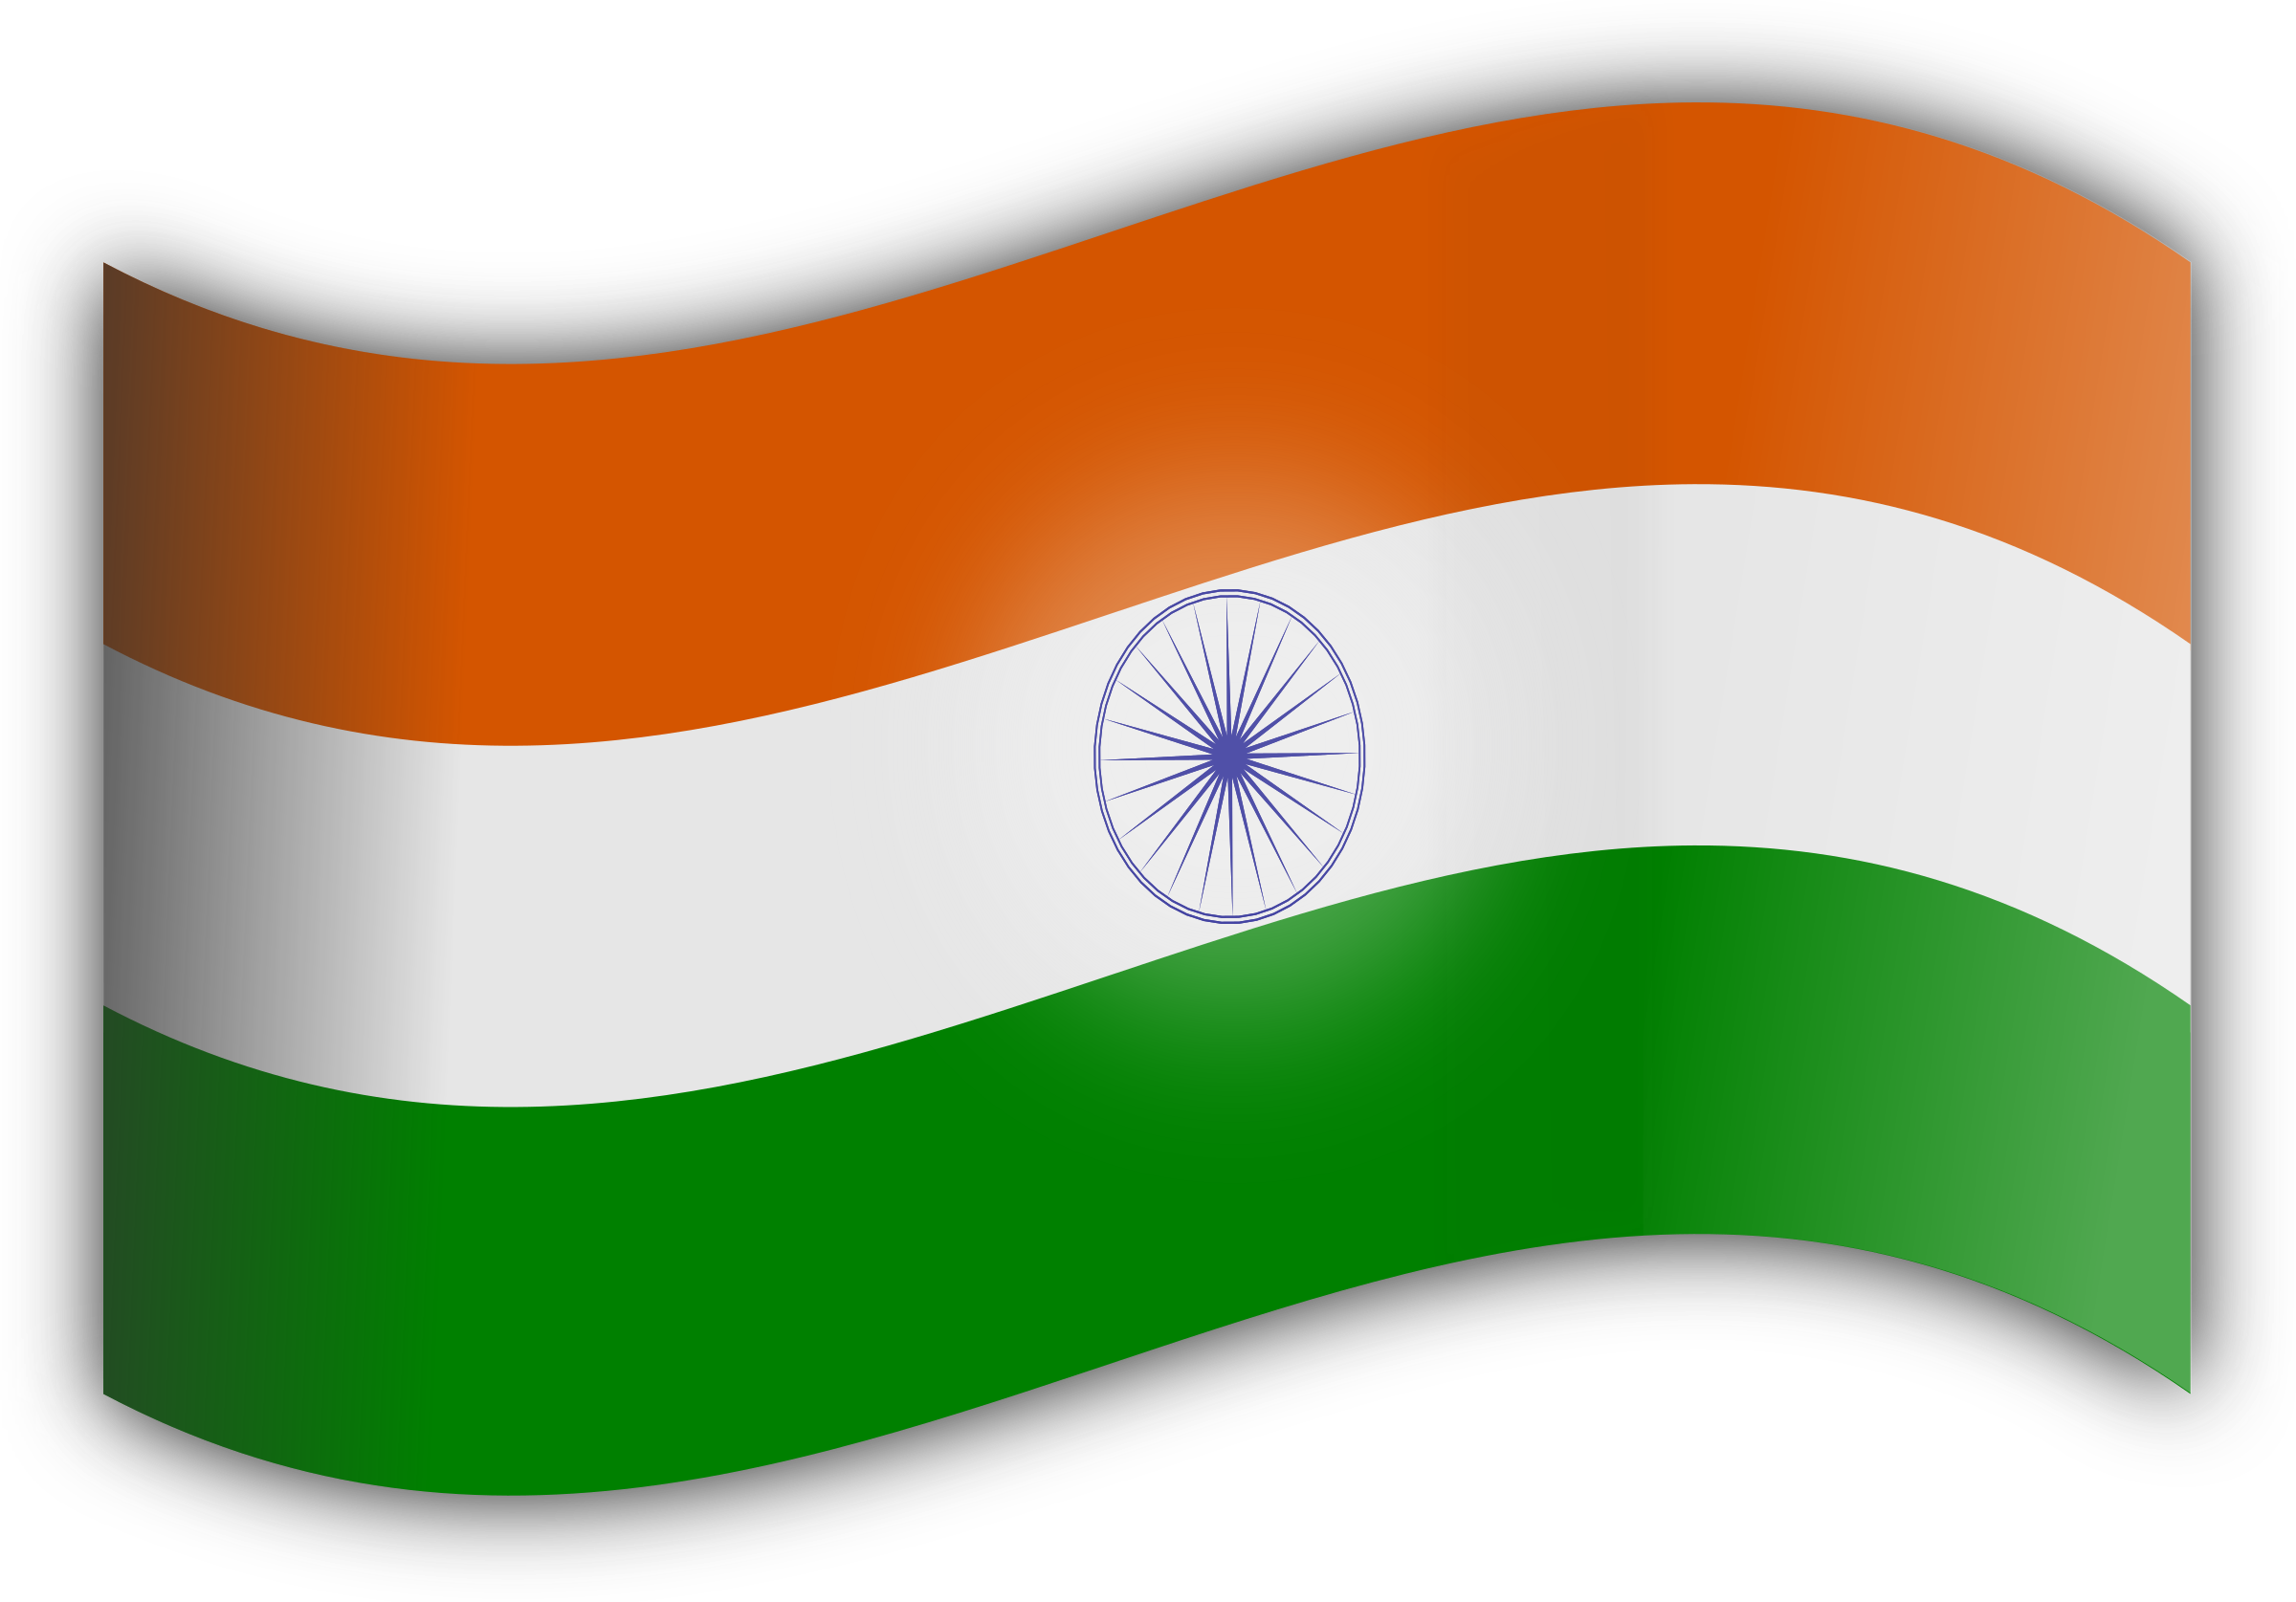 Free Indian Flag Png, Download Free Clip Art, Free Clip Art on.